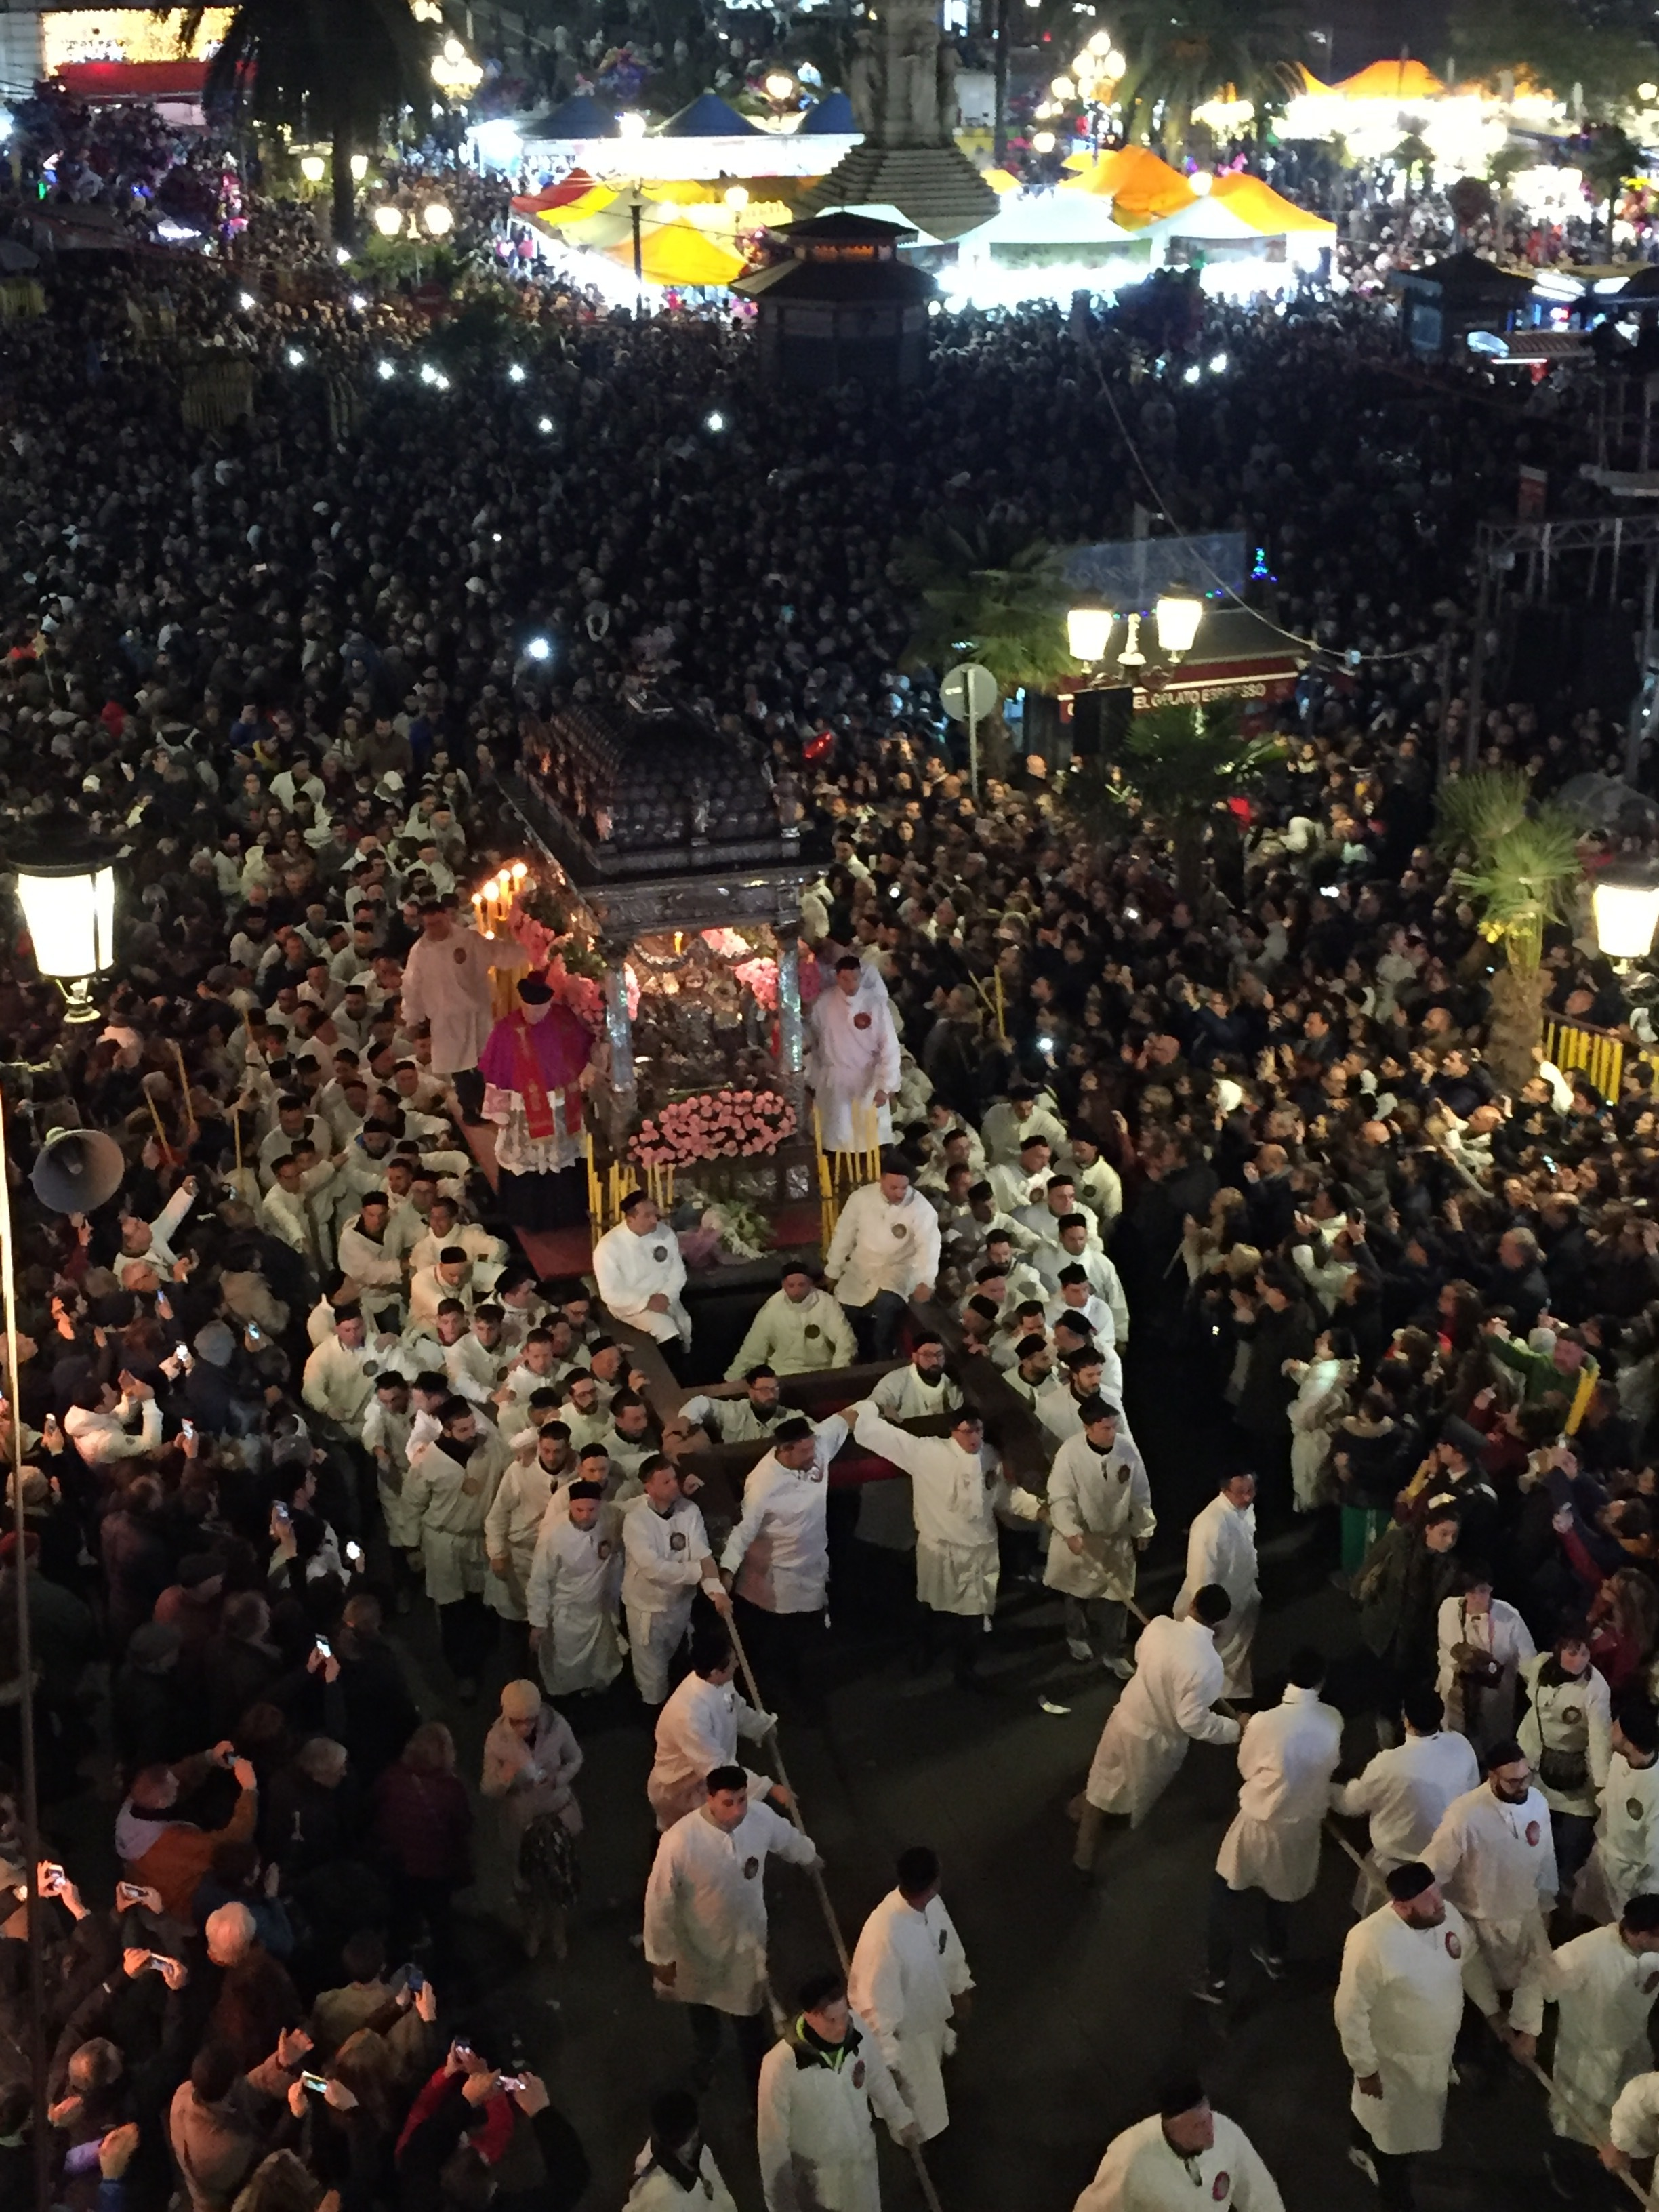 St. Agata in her  vara  (float) being carried by the men in  u saccu  (traditional white robes) worn by her devotees  PICTURE BY TRAVEL ITALIAN STYLE